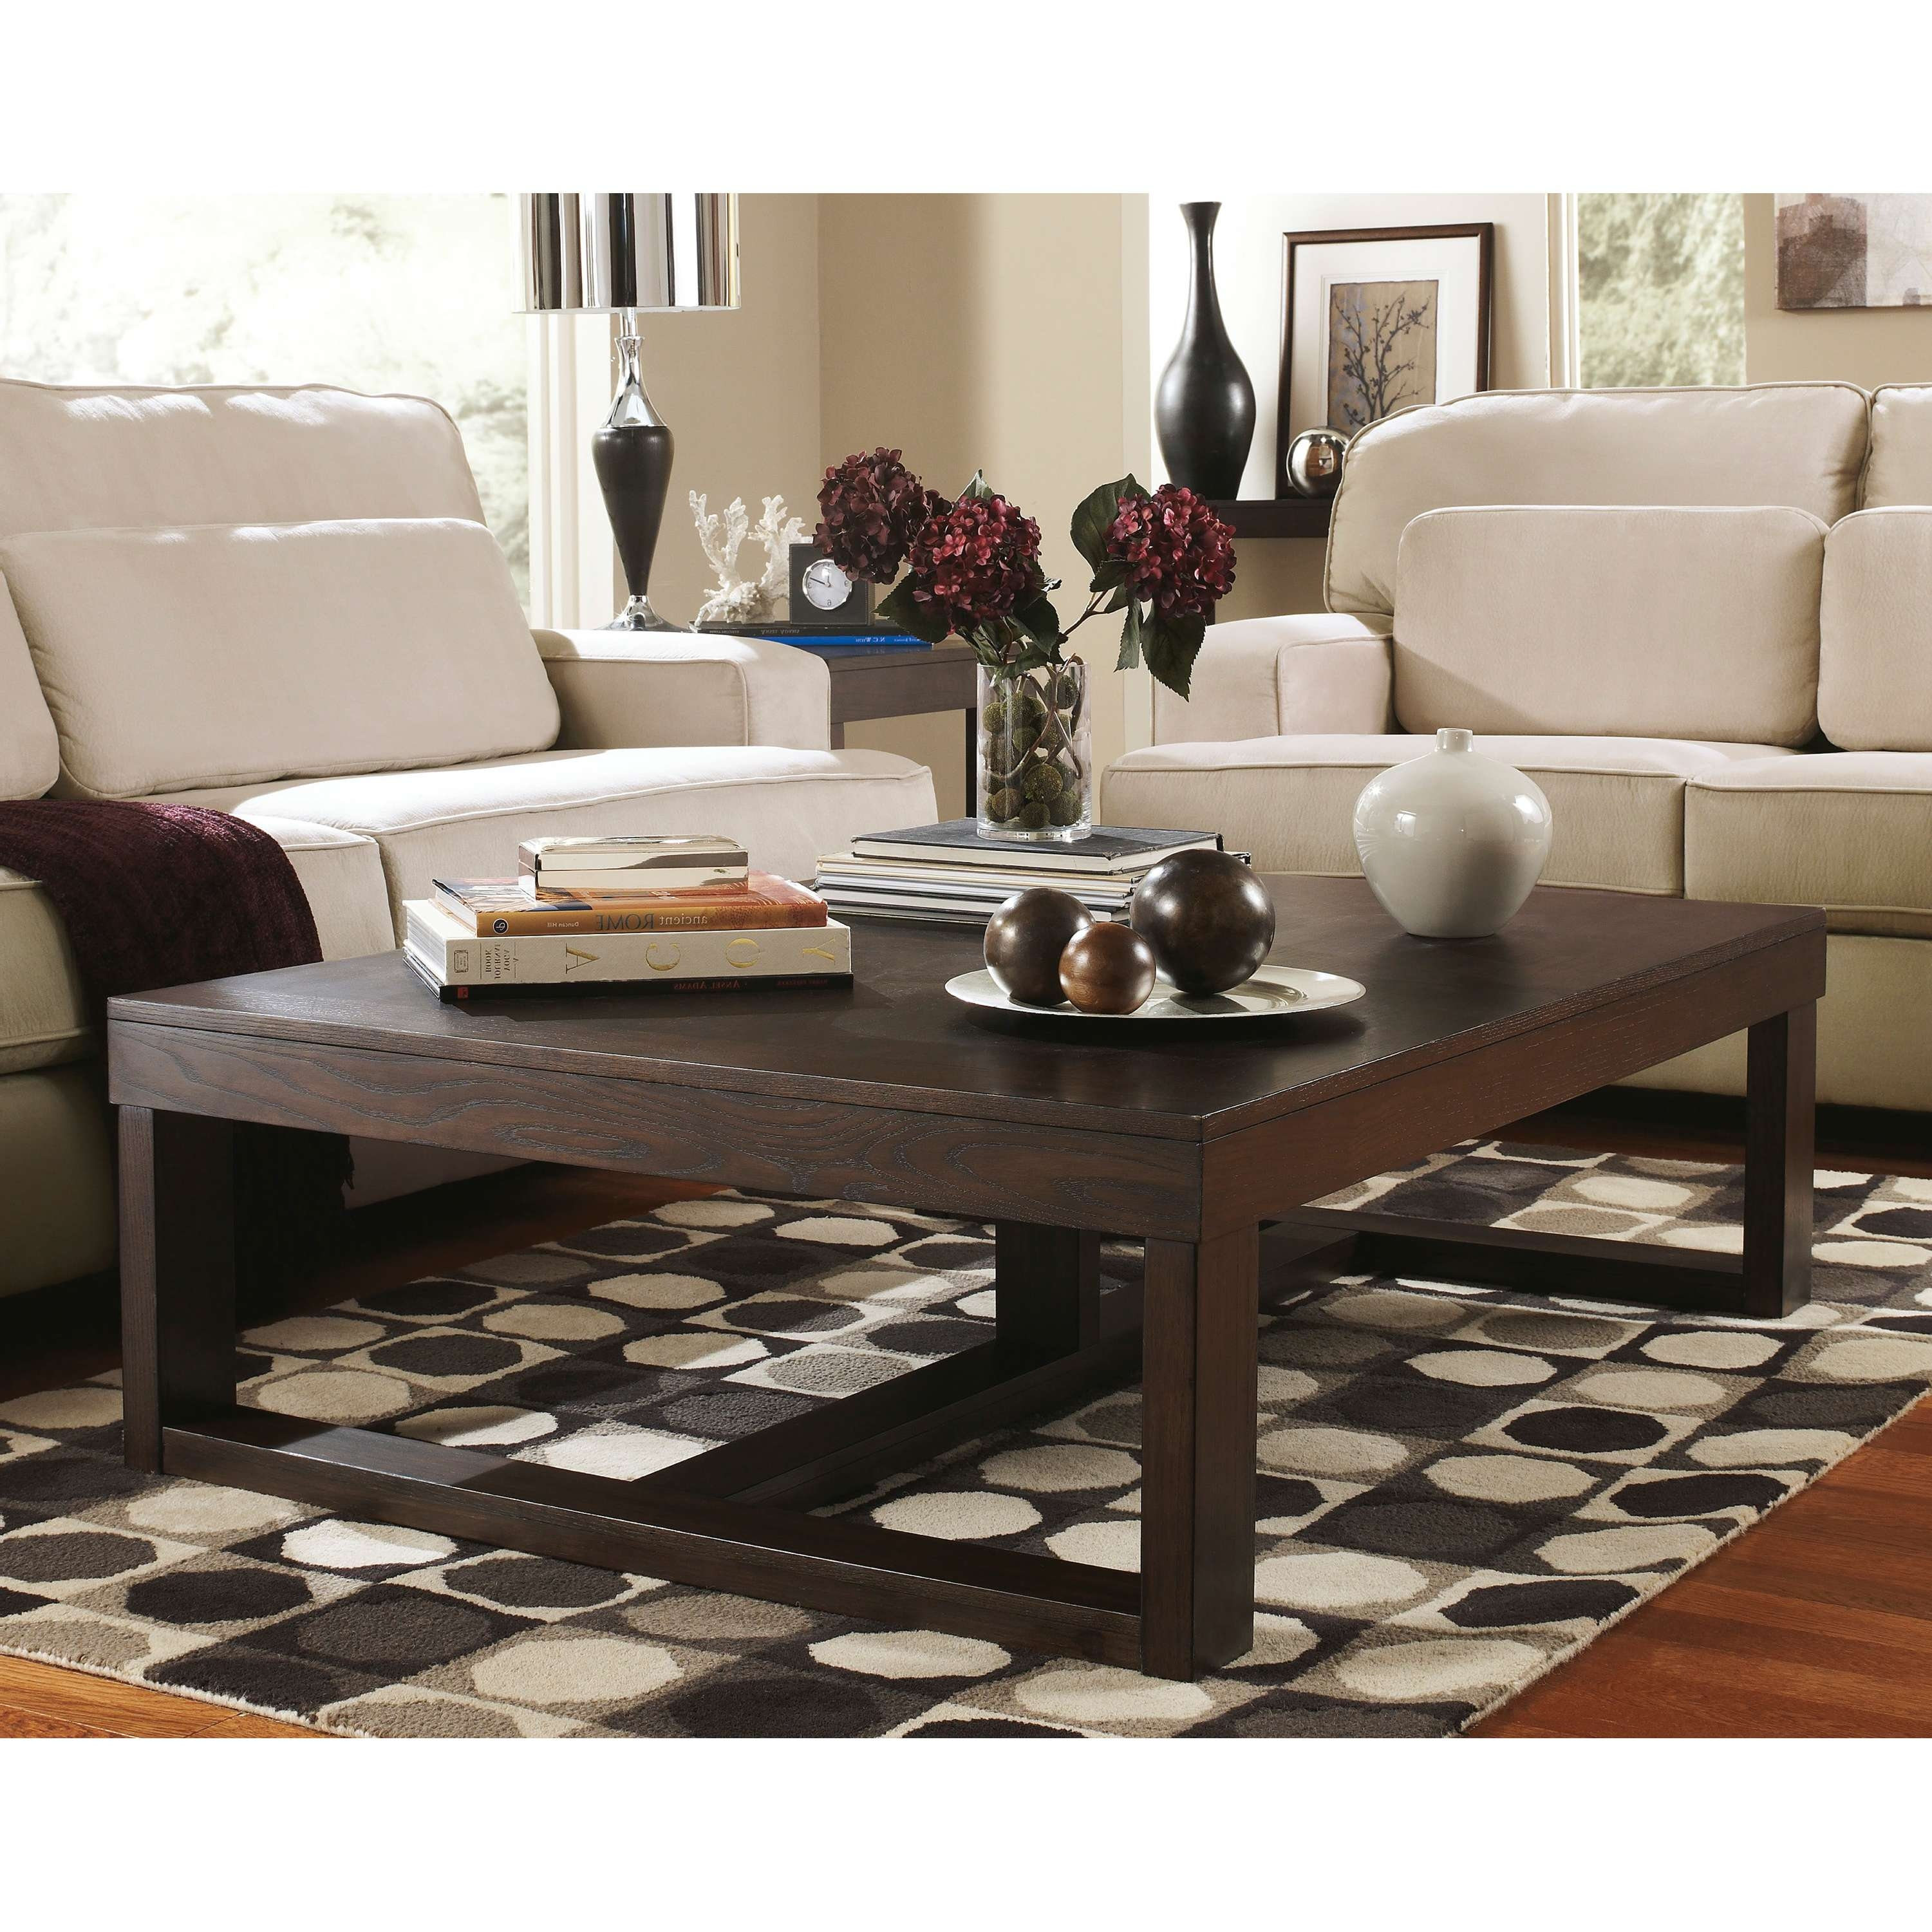 Coffee Table : How Big Is Coffee Table Ottoman Lotshow Standard Pertaining To Popular Big Coffee Tables (View 7 of 20)